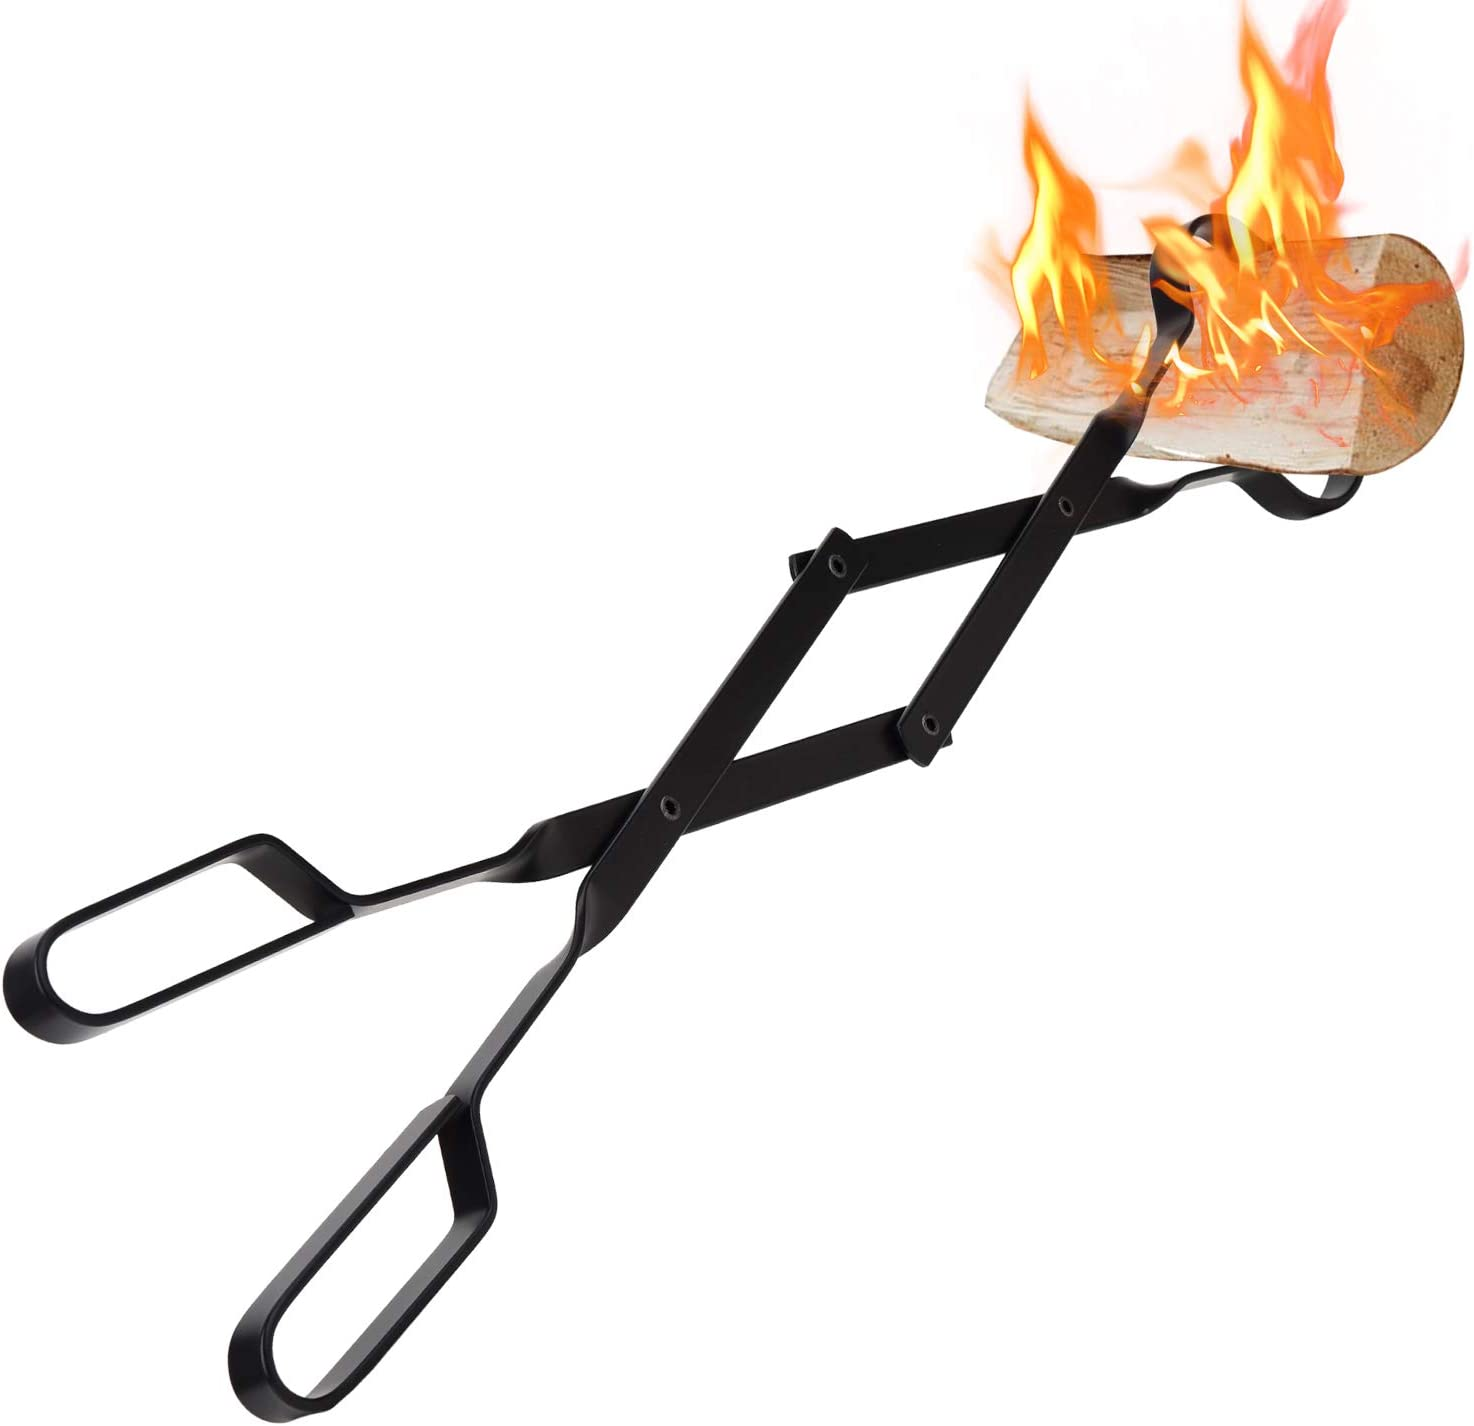 5% OFF Fireplace Tongs Today's only Log Grabber Fired Oven Cam Grill Wood Coal